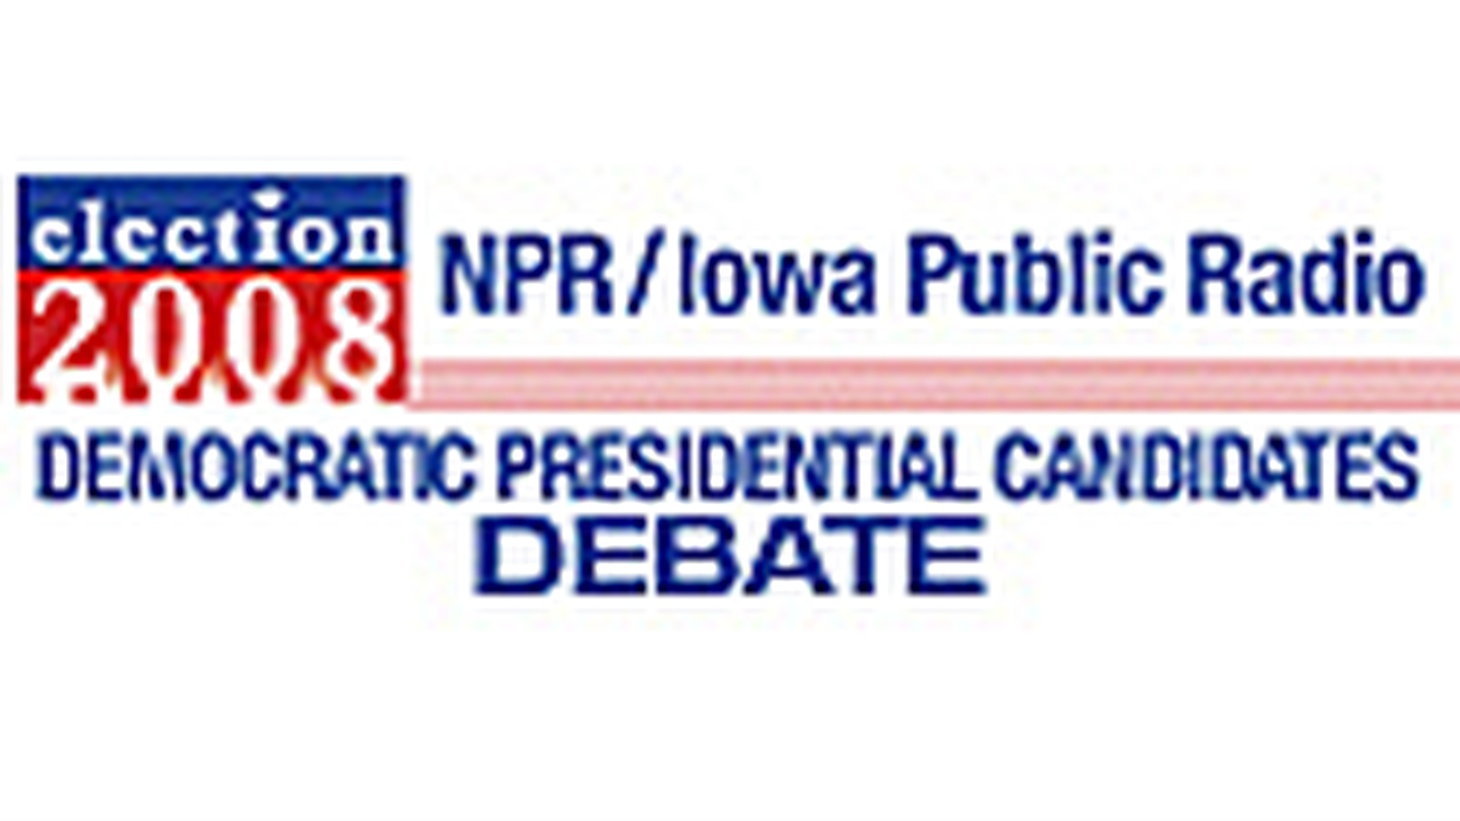 KCRW will broadcast the National Public Radio News and Iowa Public Radio national Democratic Presidential debate live from 11am to 1pm Pacific Time. All major Democratic candidates are confirmed to attend. The debate will be moderated by NPR's Steve Inskeep, Michele Norris and Robert Siegel.   The debate will pre-empt (the live broadcast of Tuesday's) To the Point as well as the last hour of Morning Becomes Eclectic.